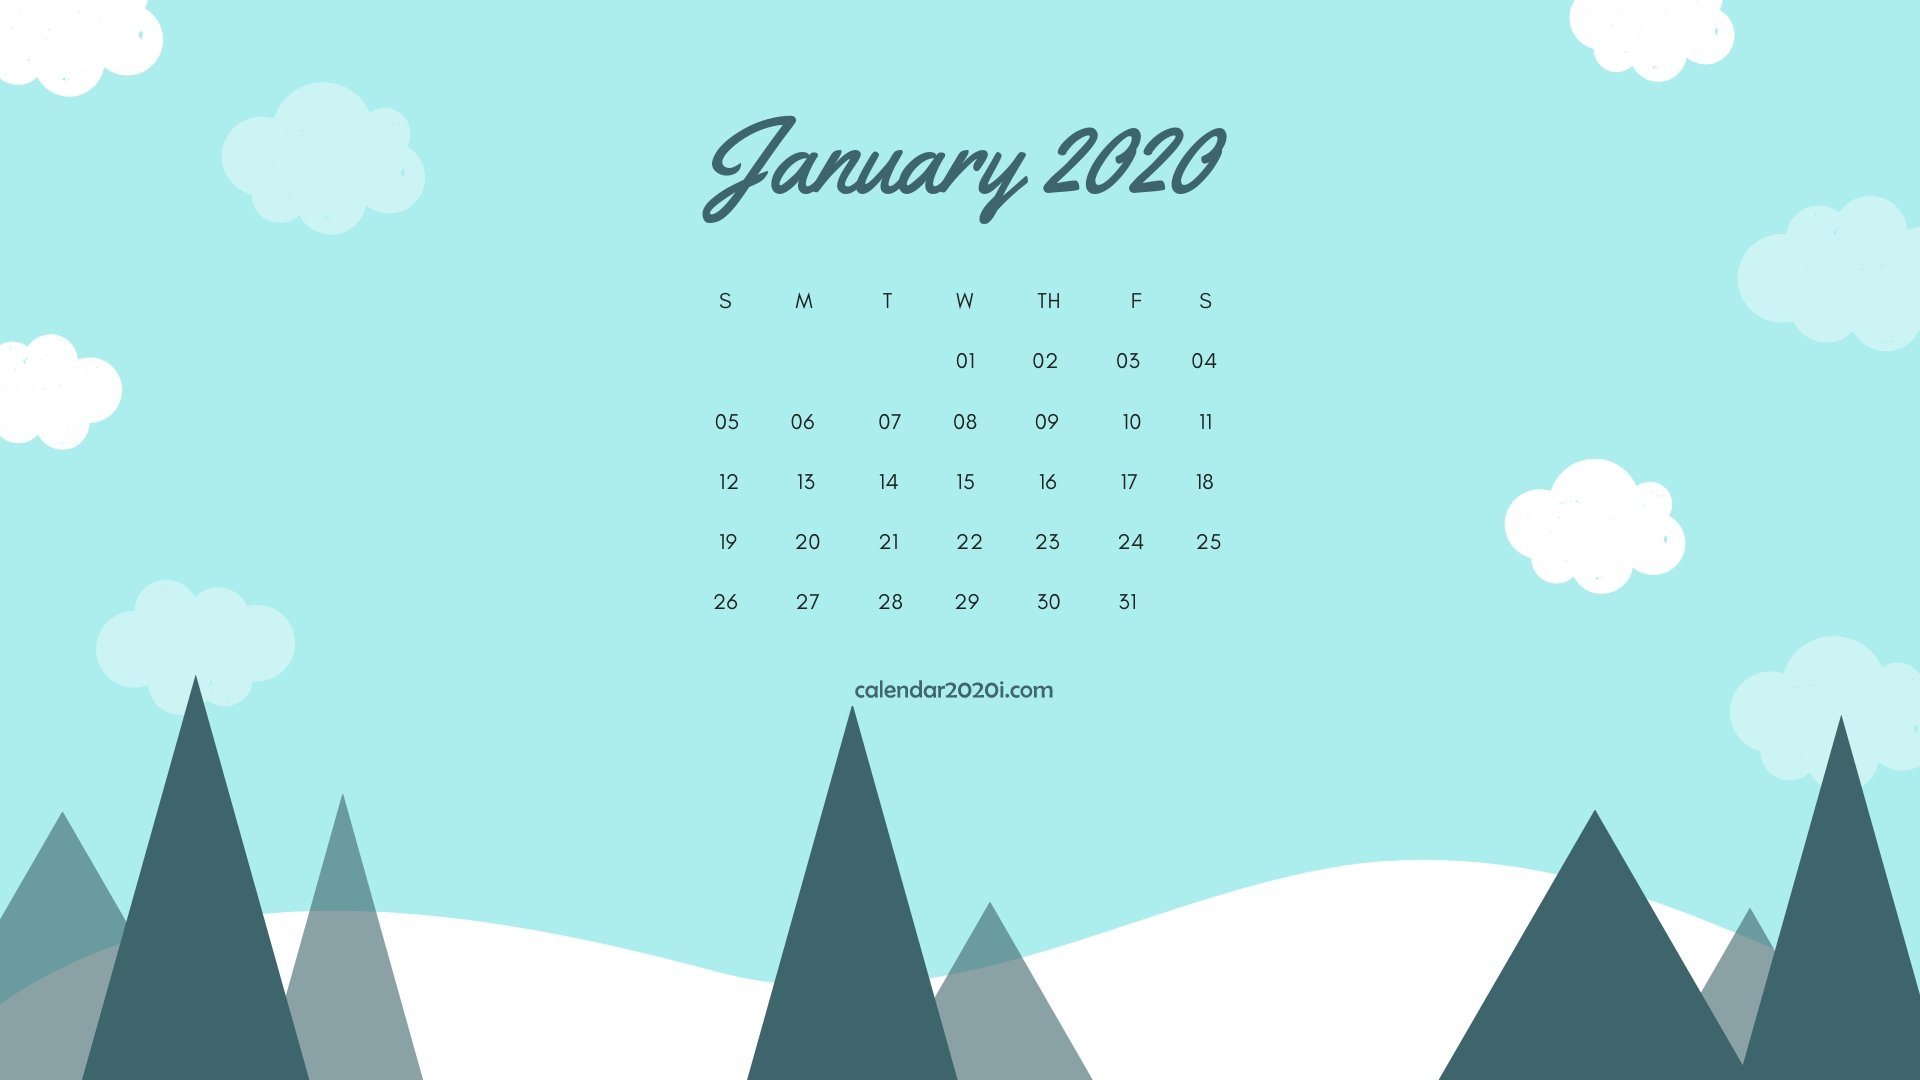 January 2020 Month Calendar Desktop Wallpaper